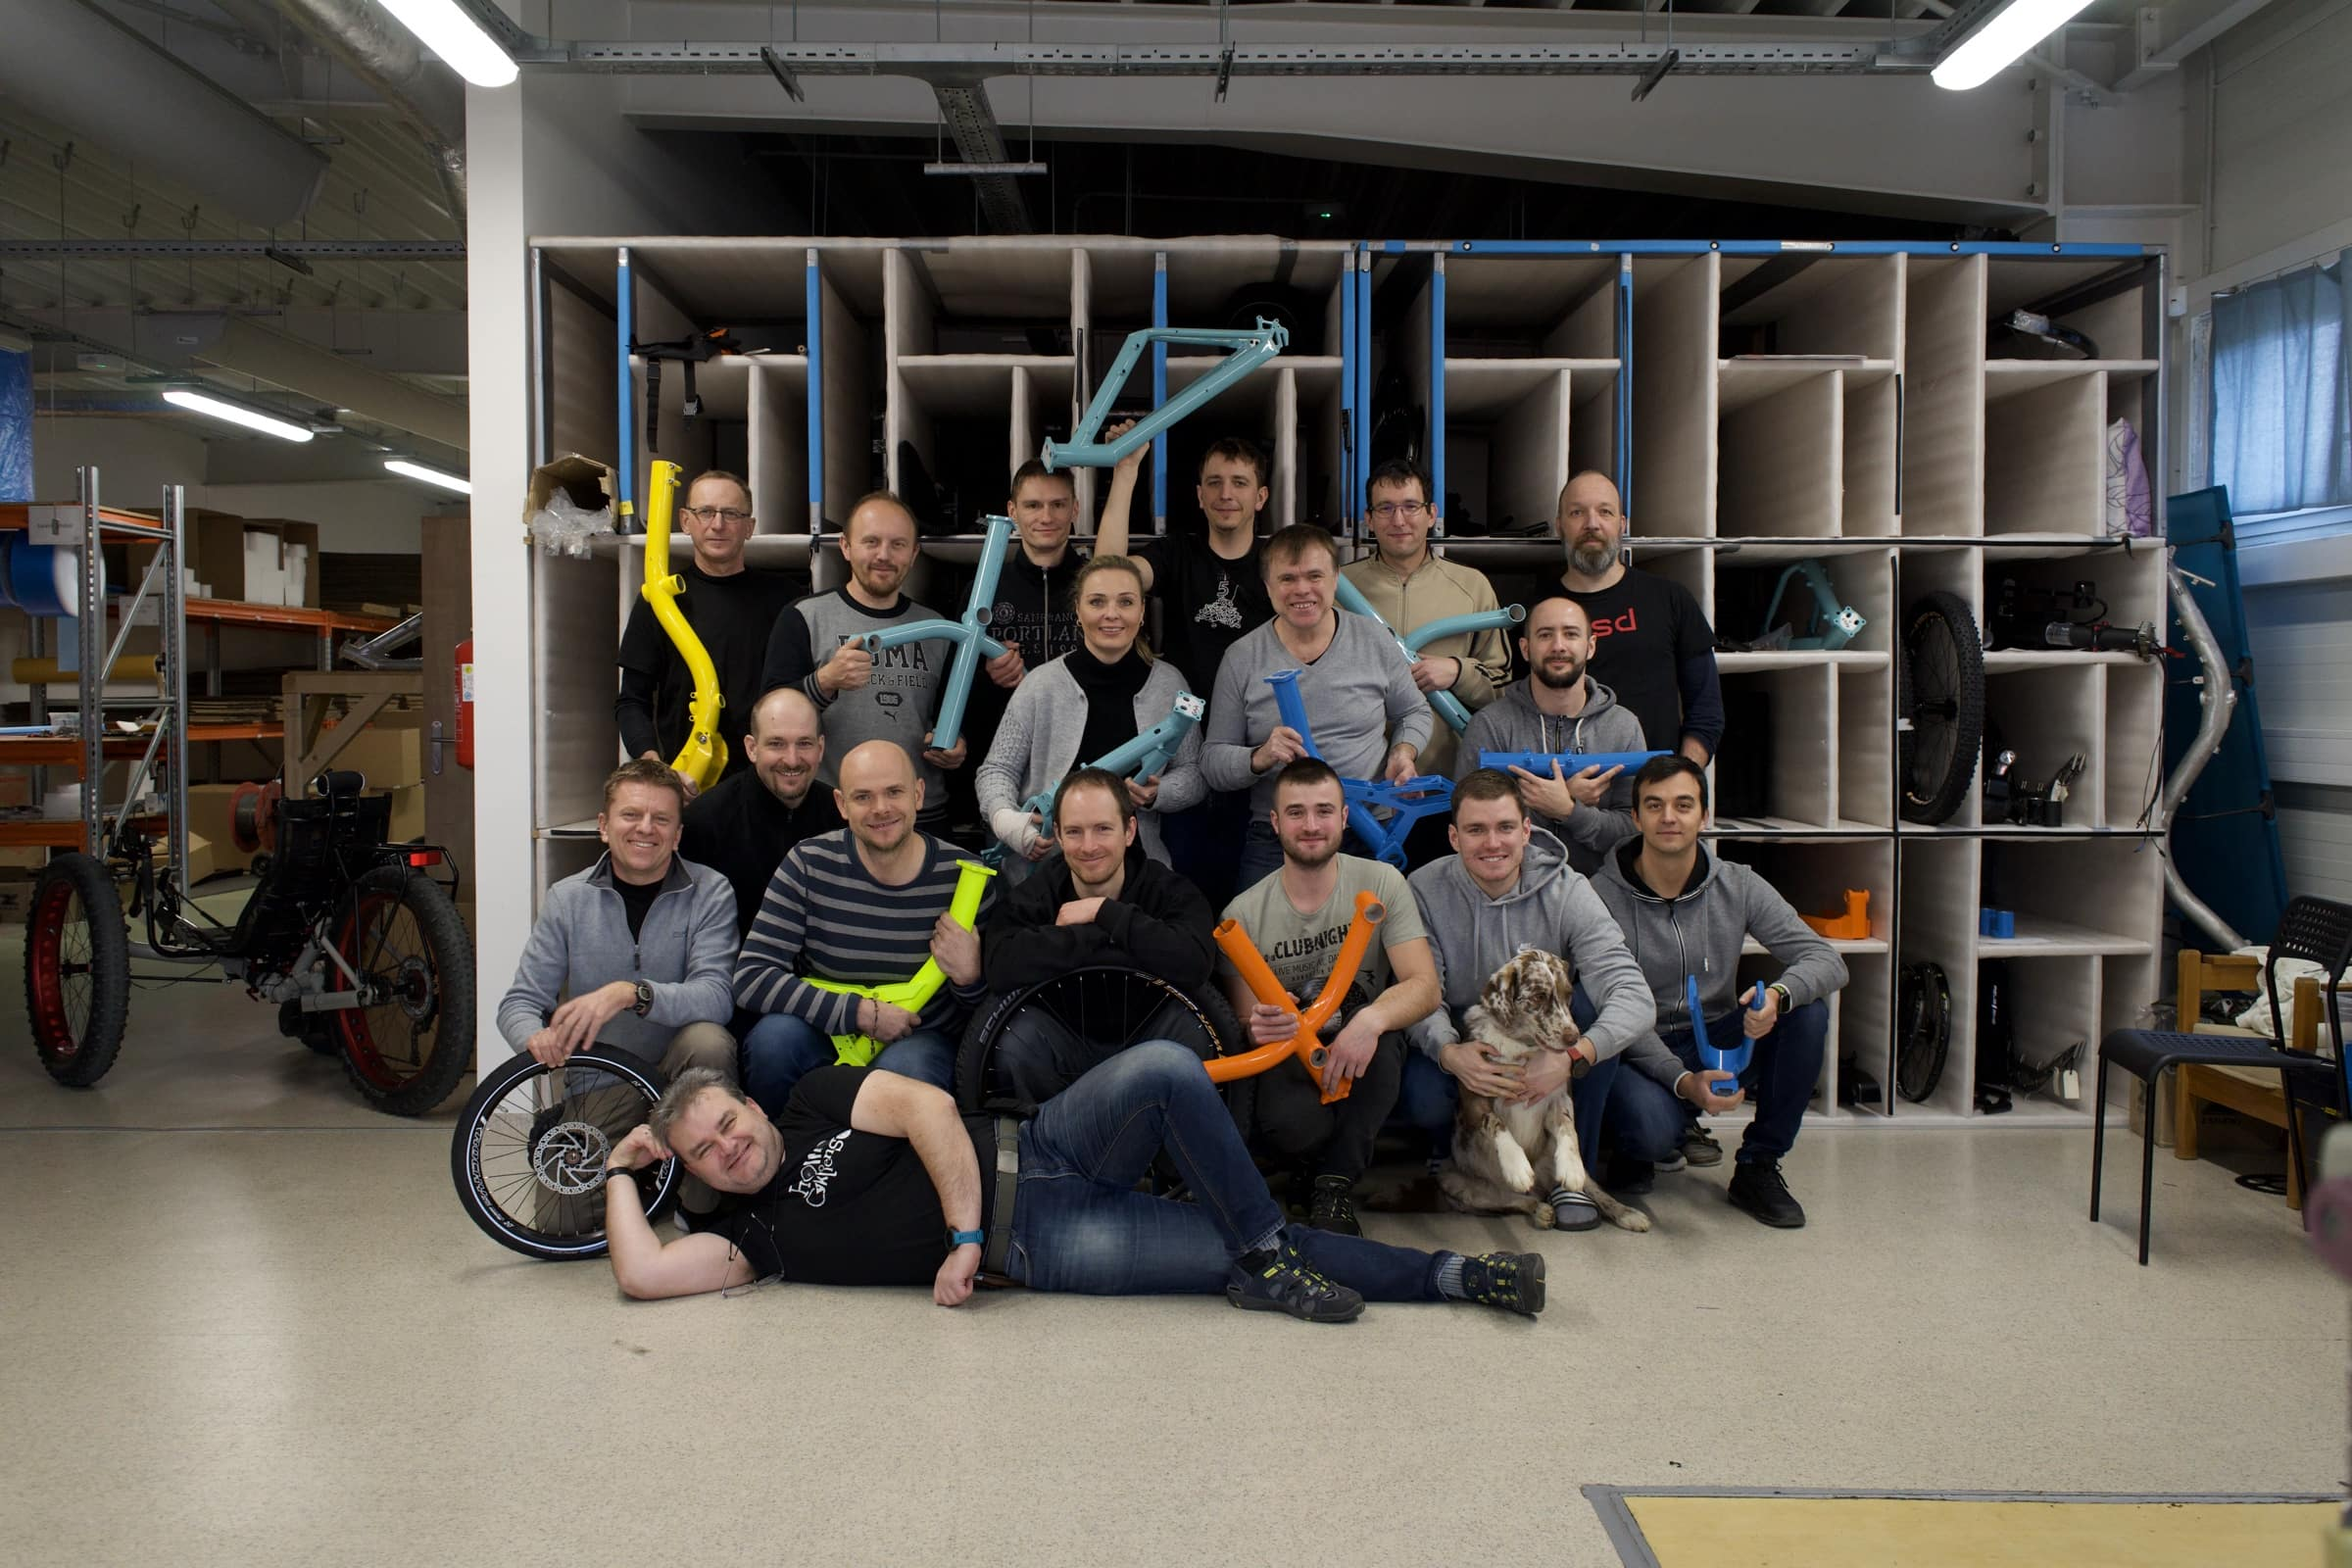 AZUB team - where we build our recumbents